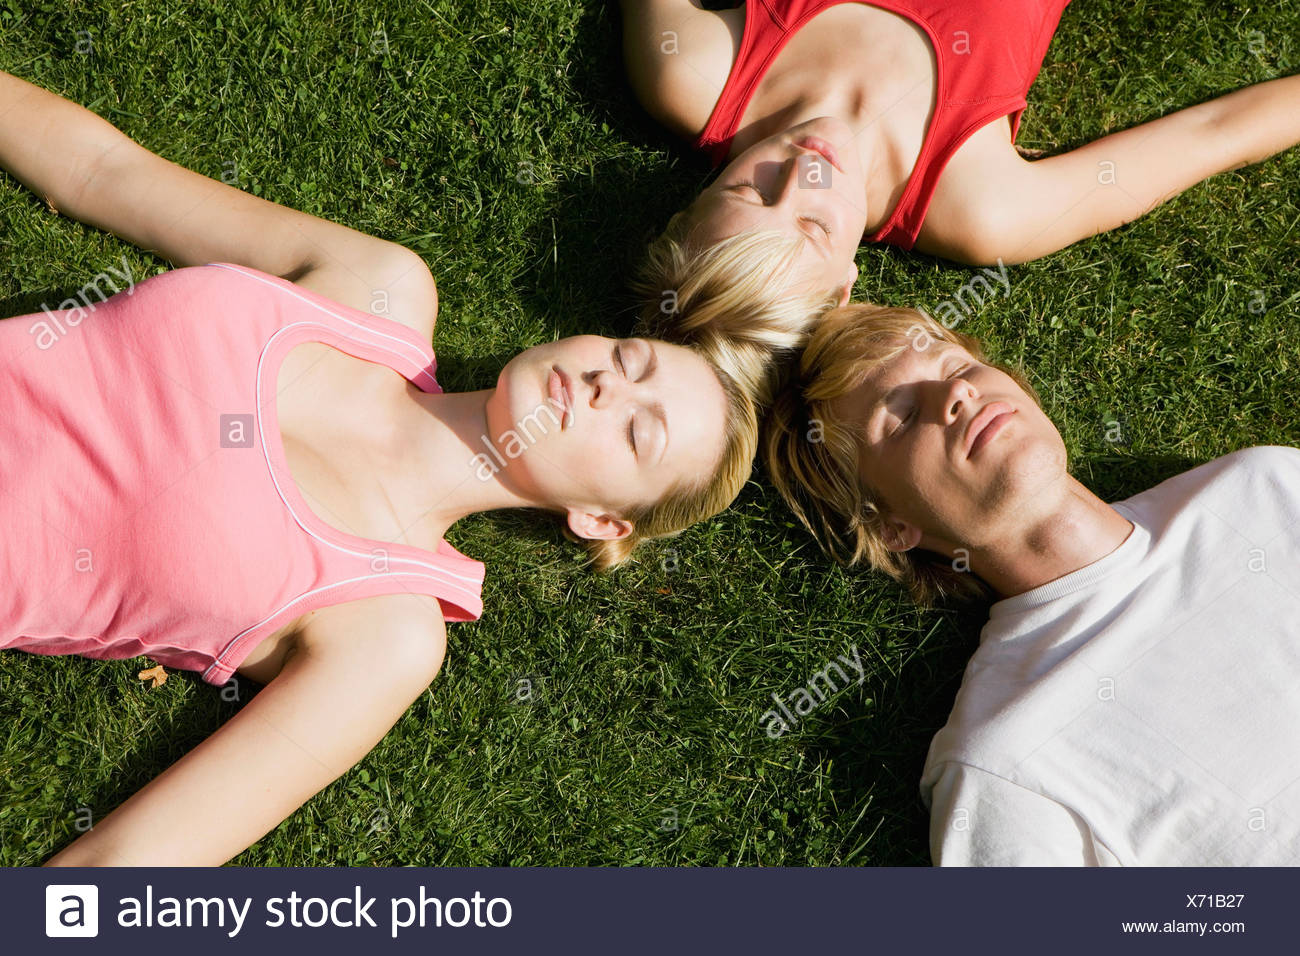 Germany, Berlin, Three persons lying on lawn, elevated view - Stock Image